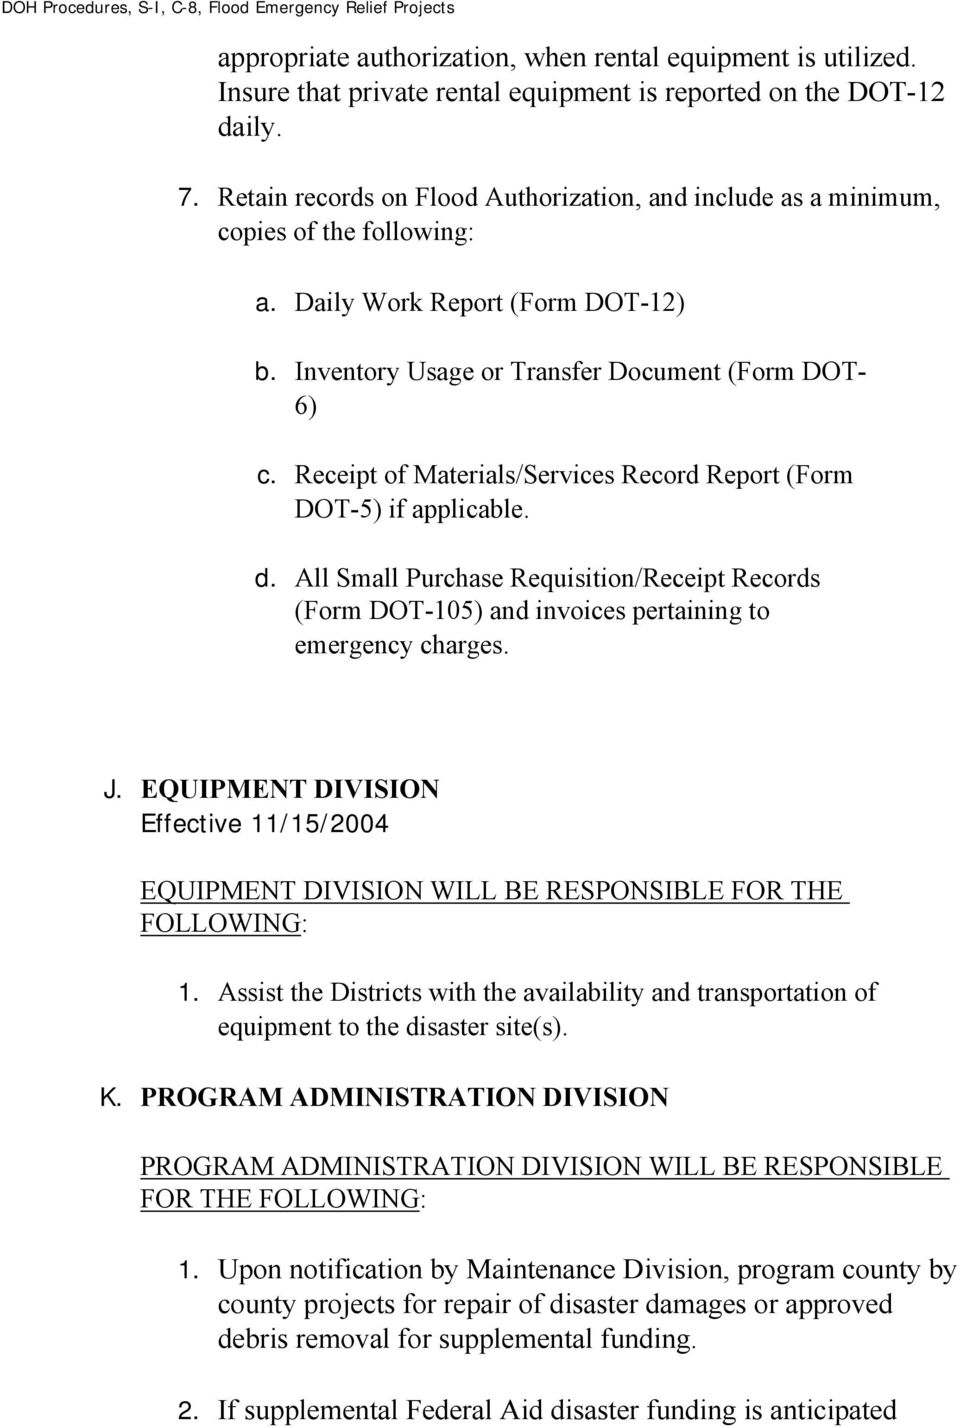 Receipt of Materials/Services Record Report (Form DOT-5) if applicable. d. All Small Purchase Requisition/Receipt Records (Form DOT-105) and invoices pertaining to emergency charges. J.